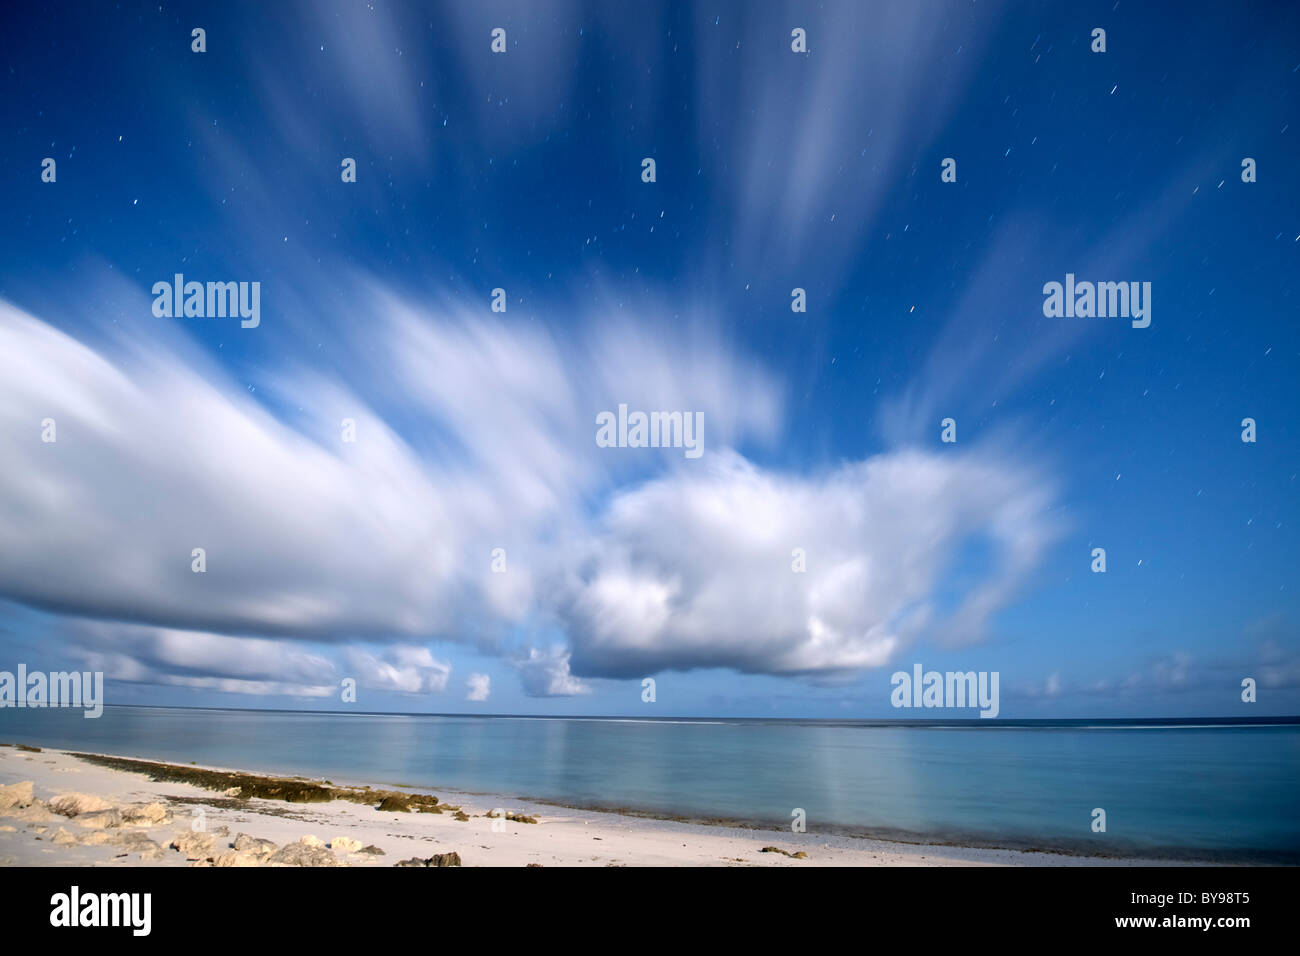 Nighttime, moonlit view of the beach and Indian Ocean (Mozambique channel) at Beheloka on the southwestern coast - Stock Image